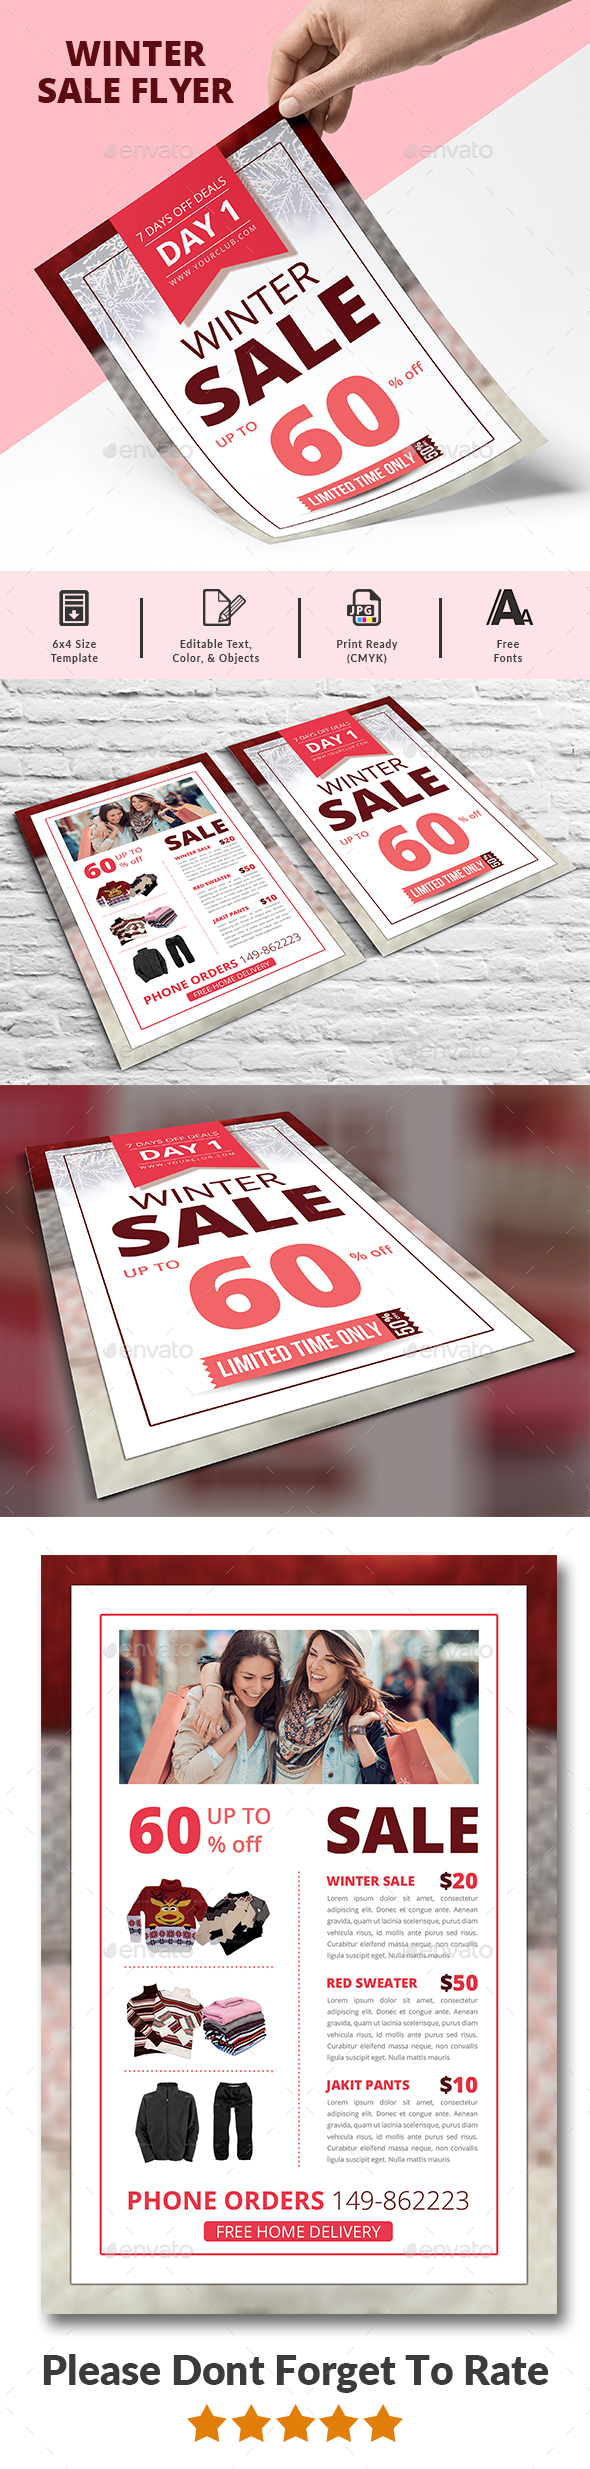 Product Promotion Flyer - Commerce Flyers